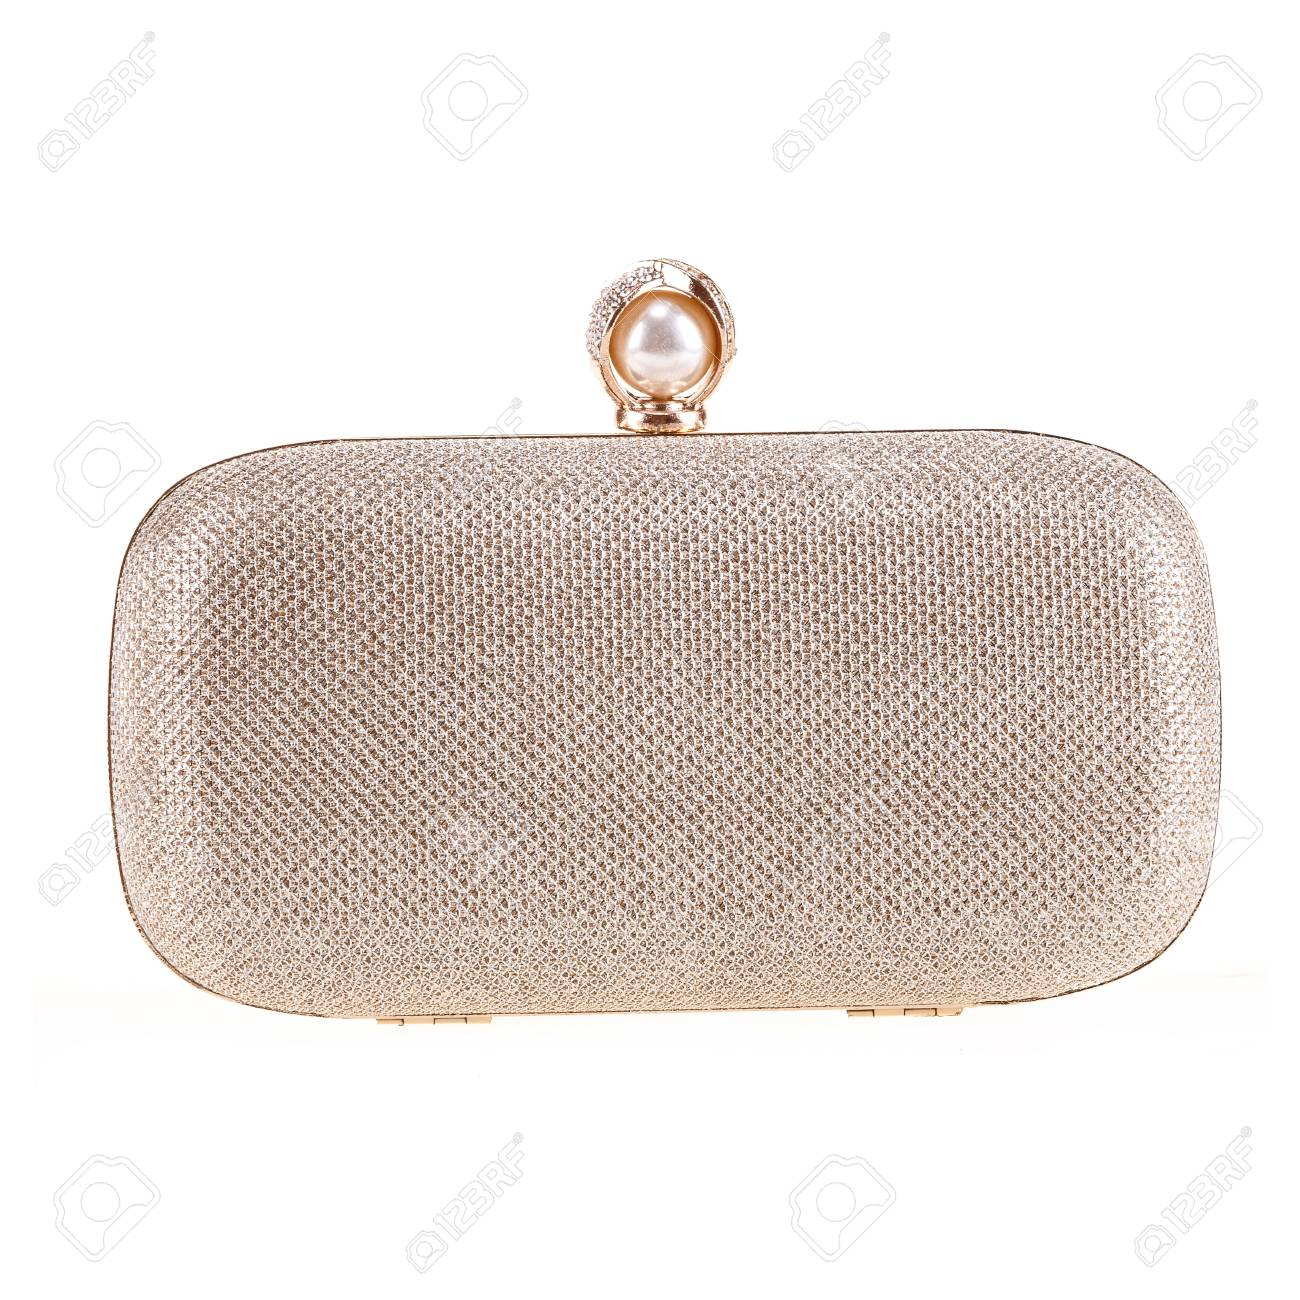 a6b16540 Golden Clutch Bag Isolated On White Background Stock Photo, Picture ...